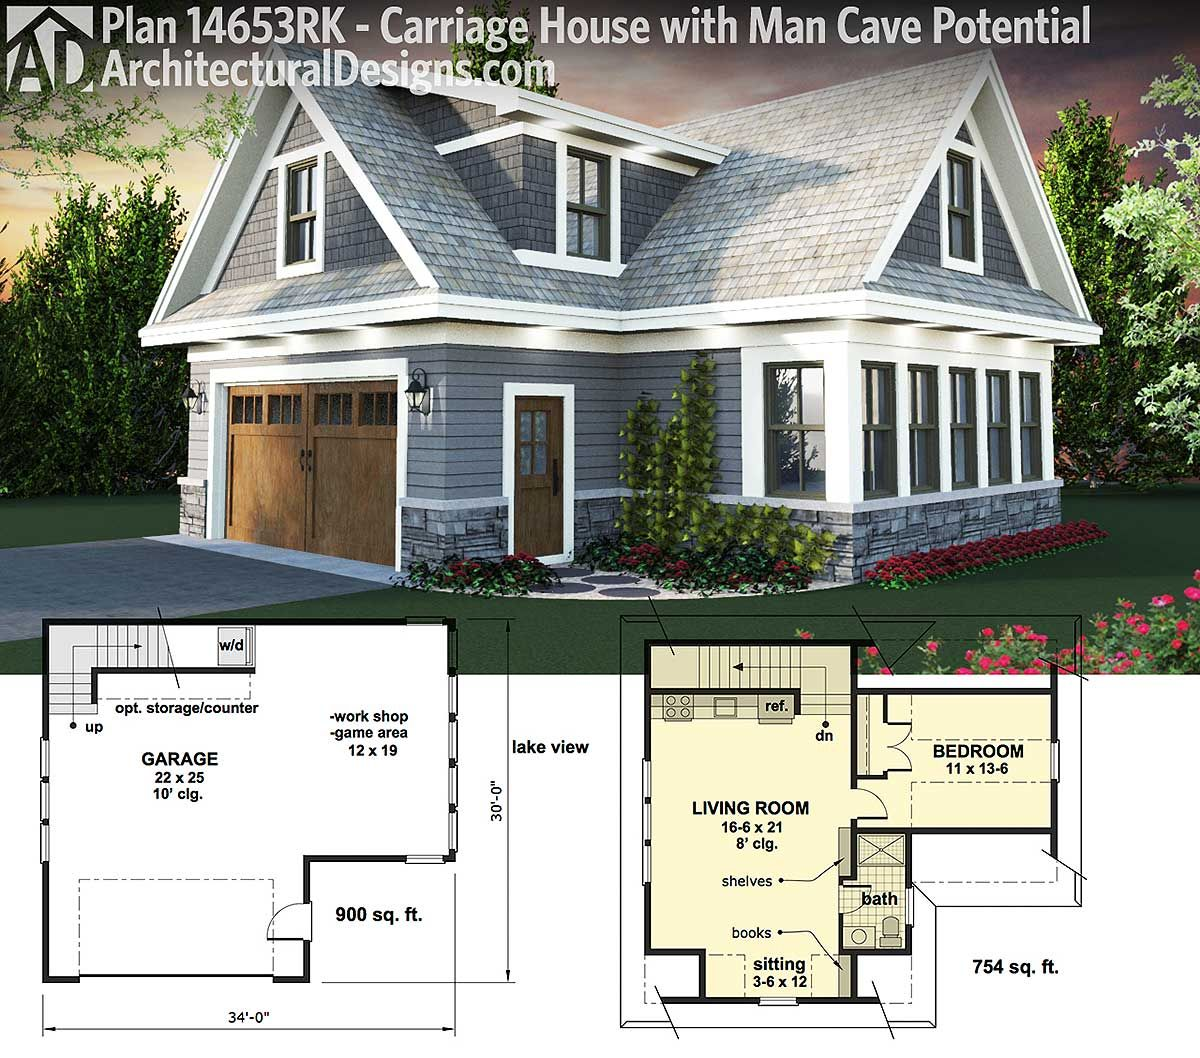 Plan 14653rk carriage house plan with man cave potential for Carriage home designs